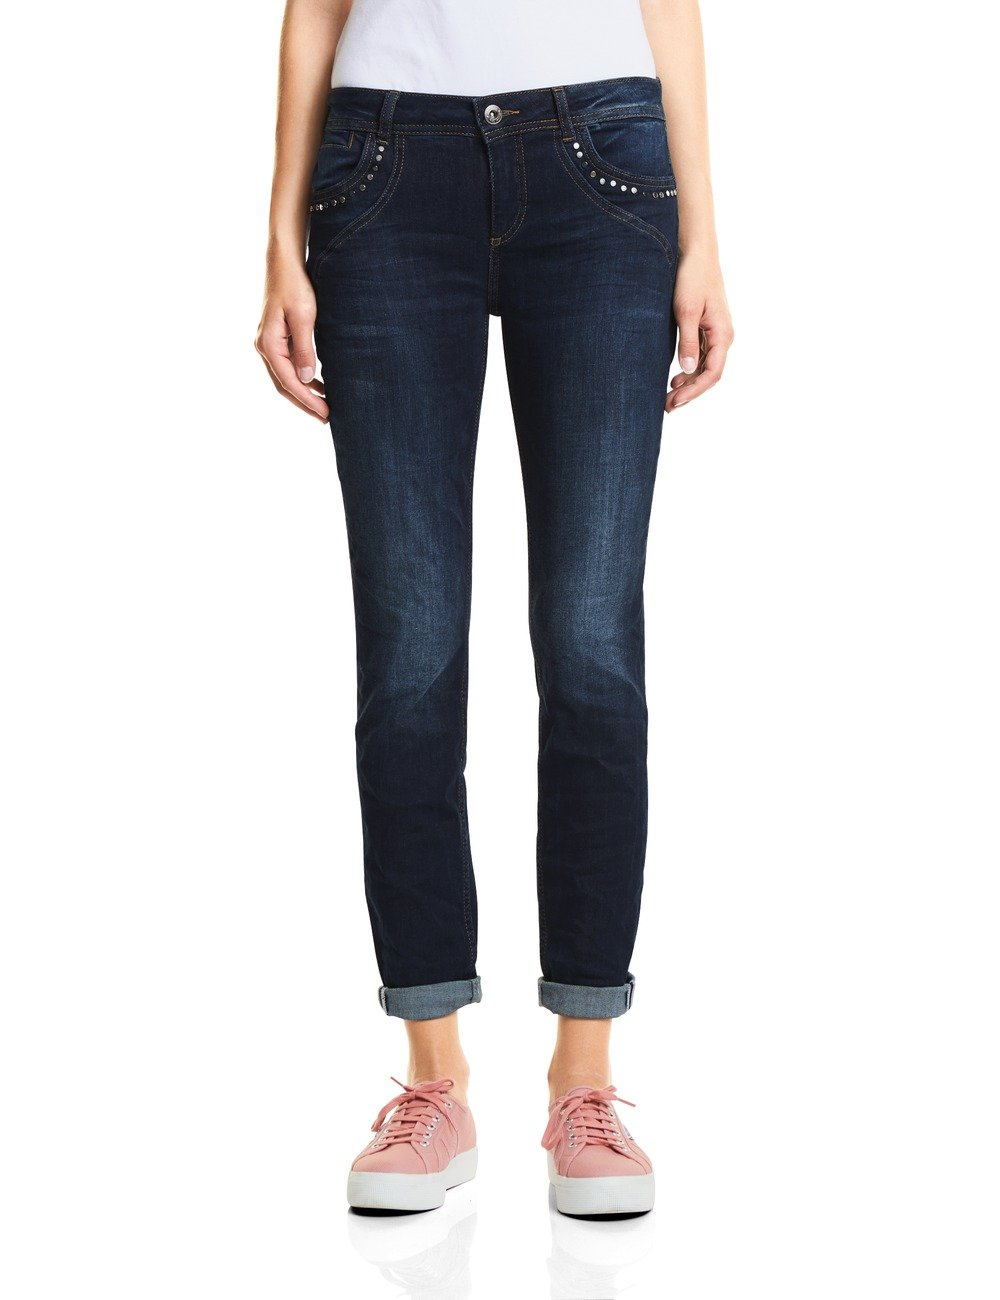 Wash One Street 32l Jean Blue 1151527w X Femme 371595 SlimBlauauthentic Deep Rob nwNyvm8O0